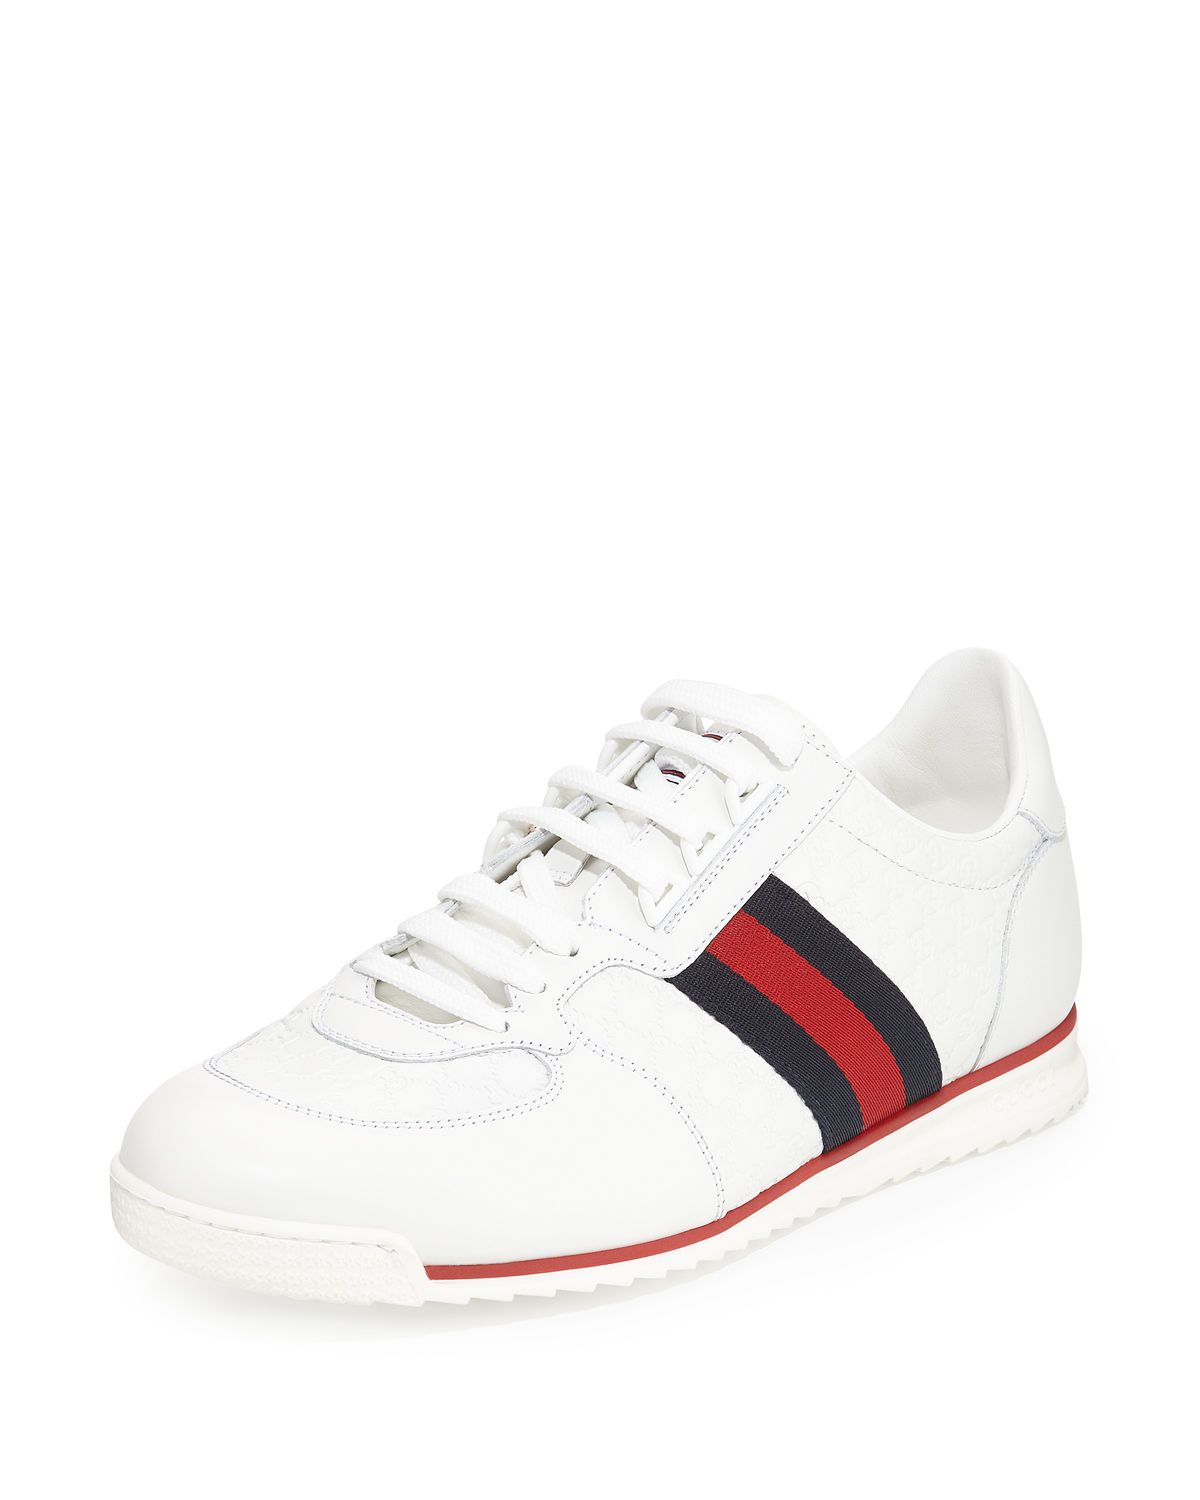 Gucci SL73 Lace-Up Sneaker   Sneakers